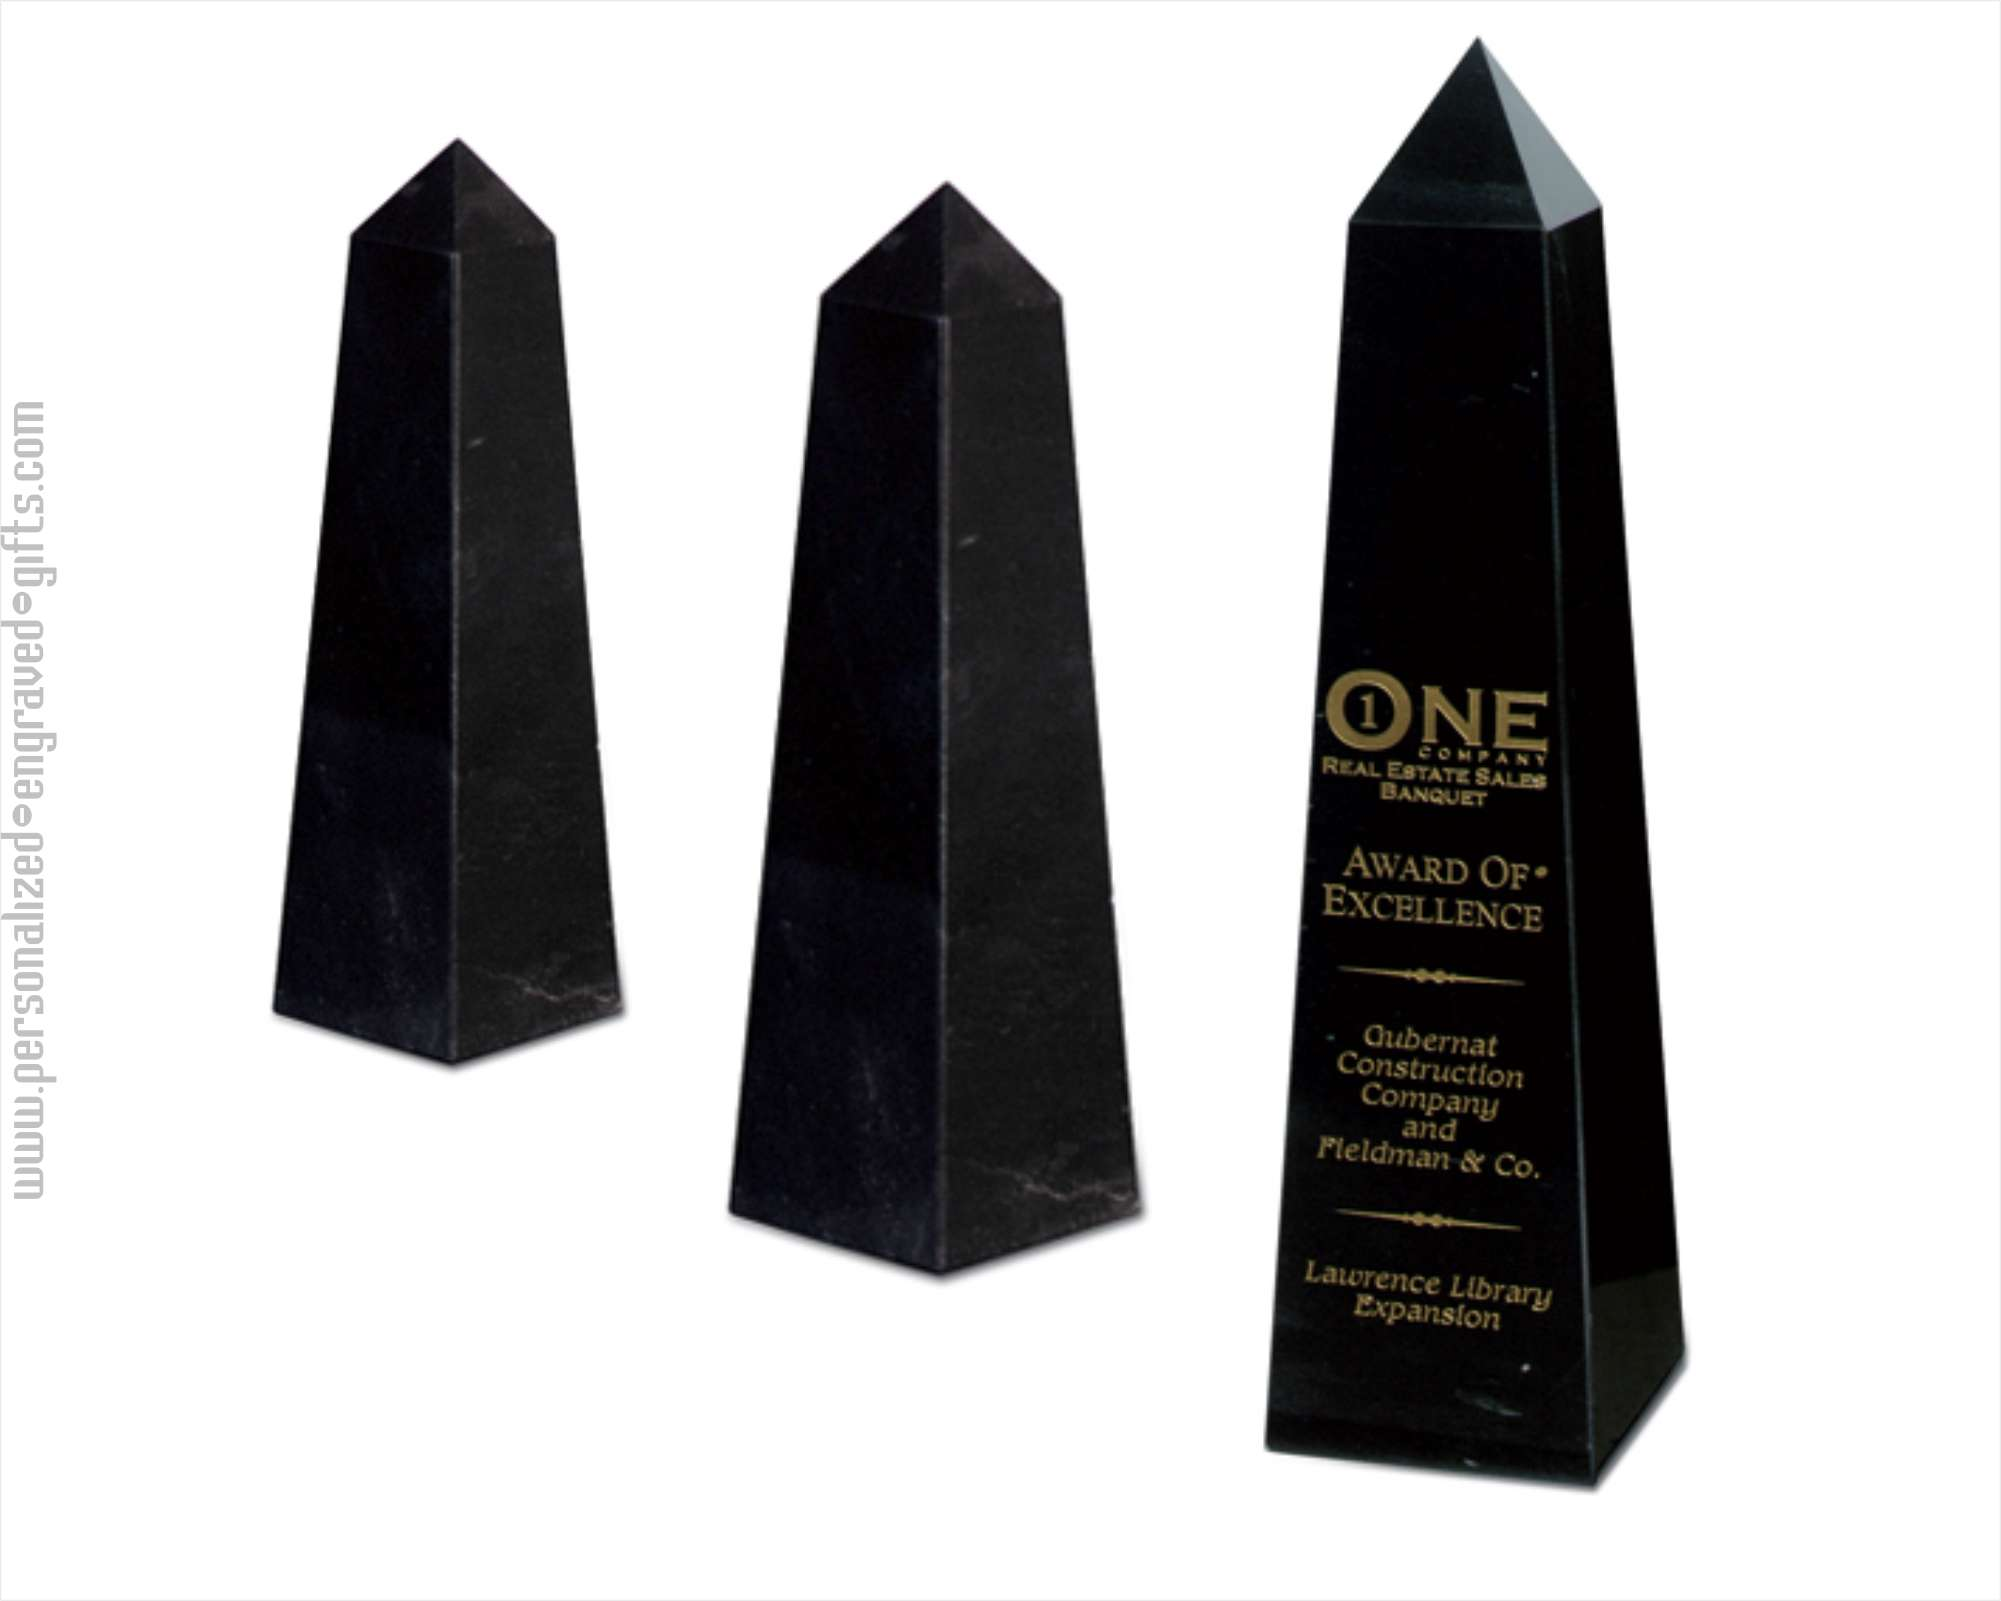 Engraved Black Marble Obelisk Award